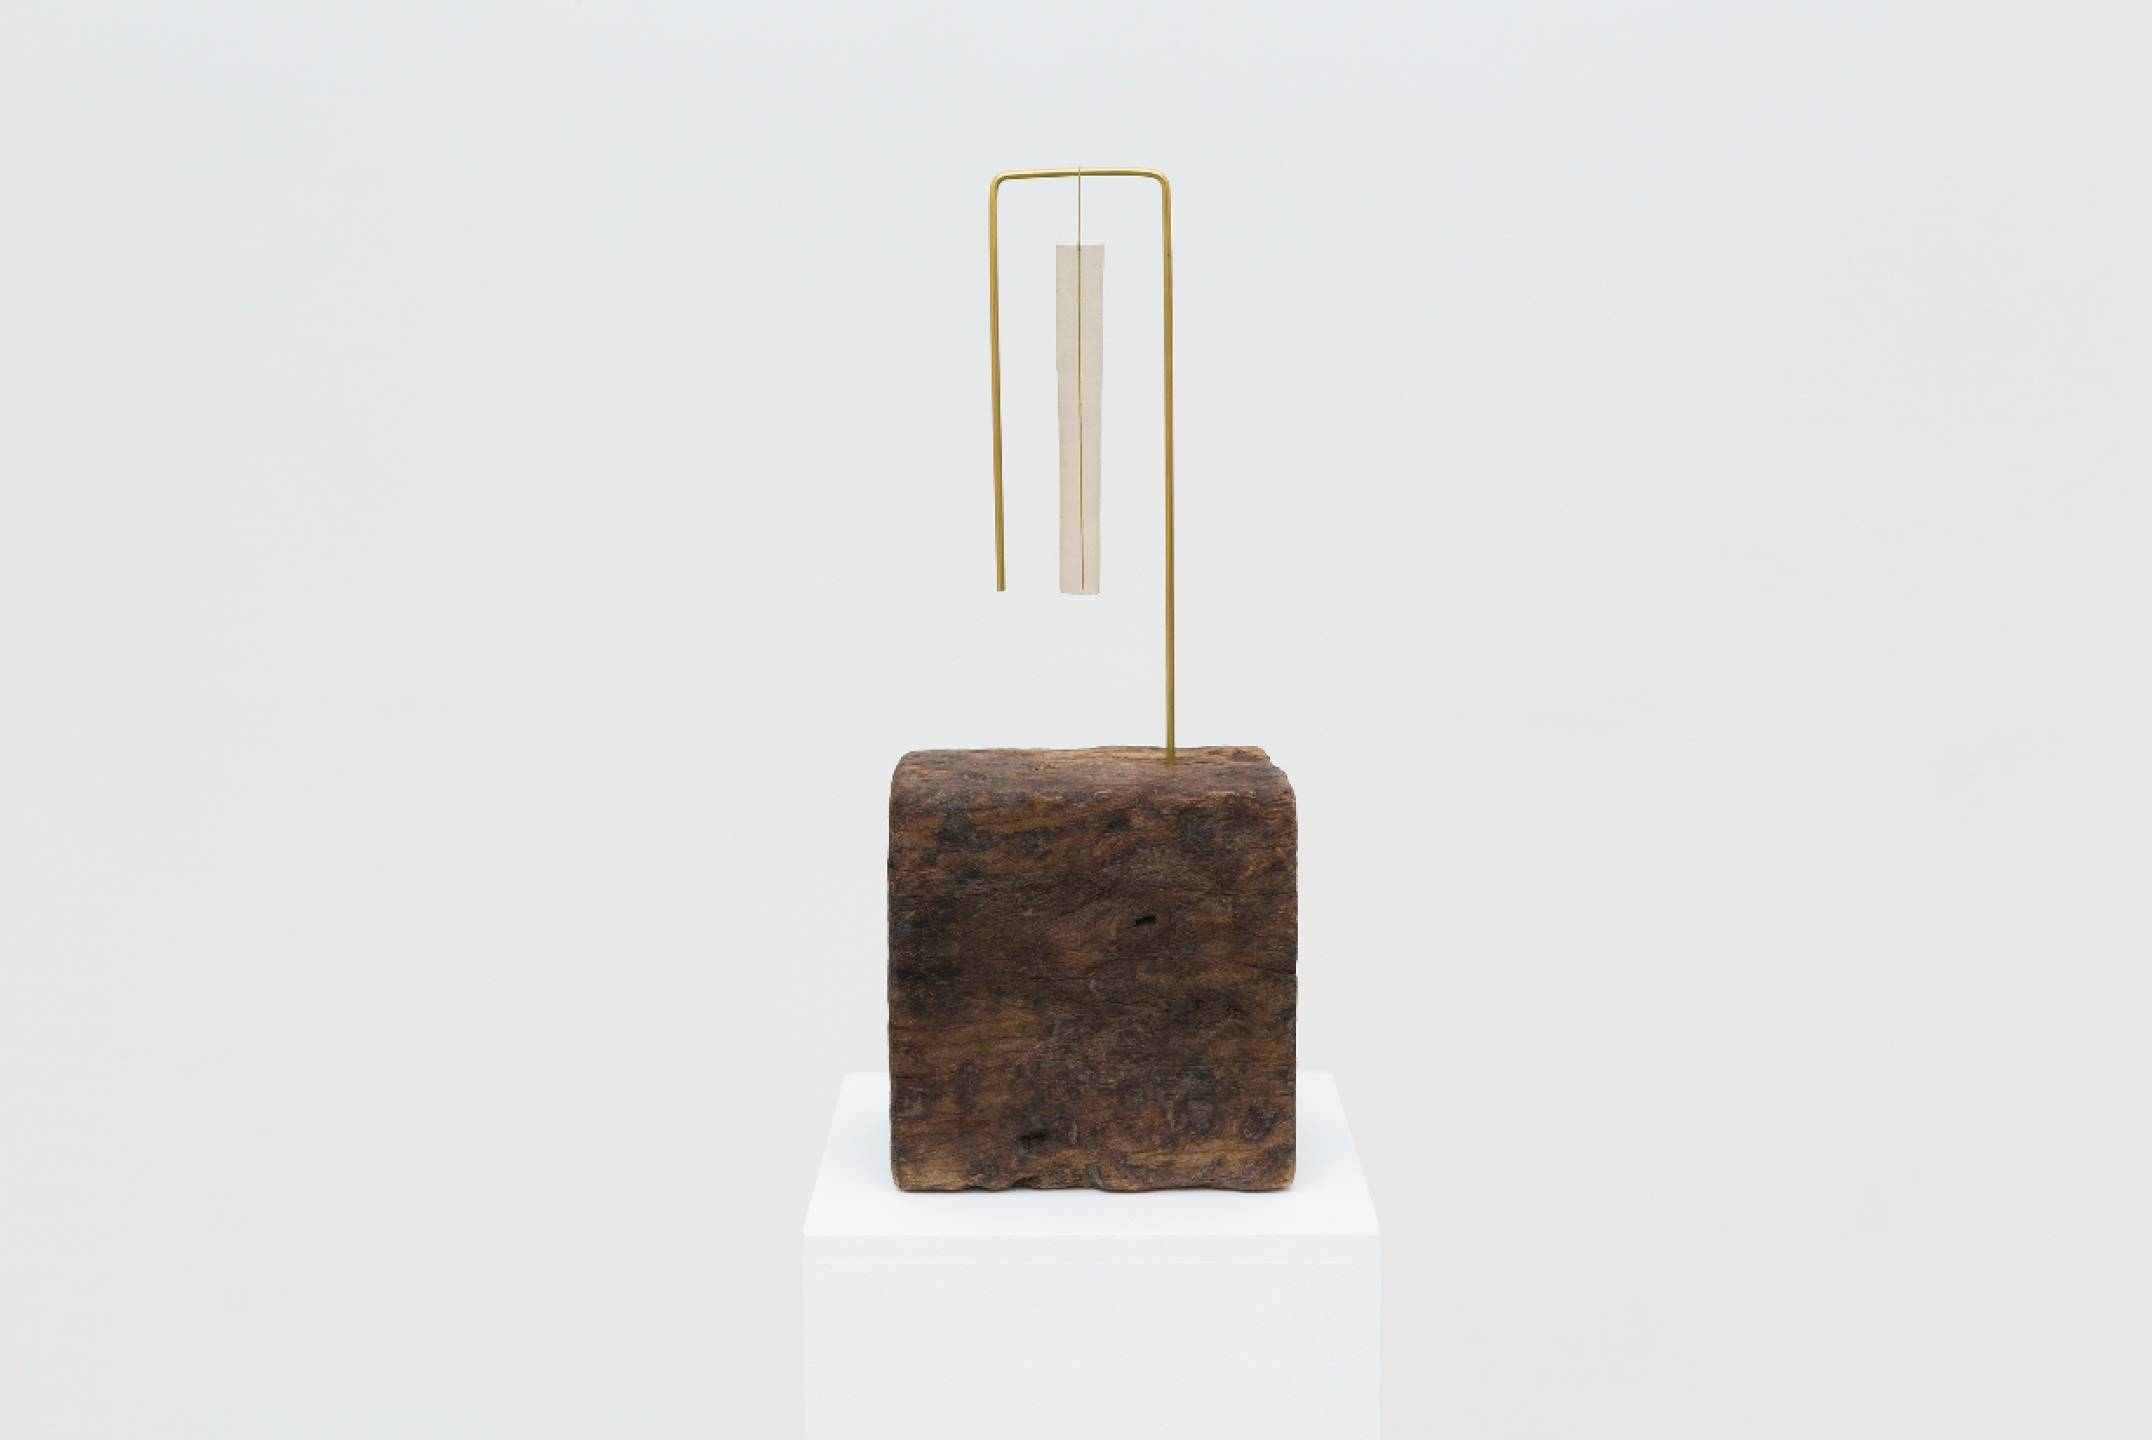 Paloma Bosquê, <em>Trave #2</em>, 2017, block of wood, brass rod folded and brass screen, 53 × 21,5 × 15,5 cm - Mendes Wood DM